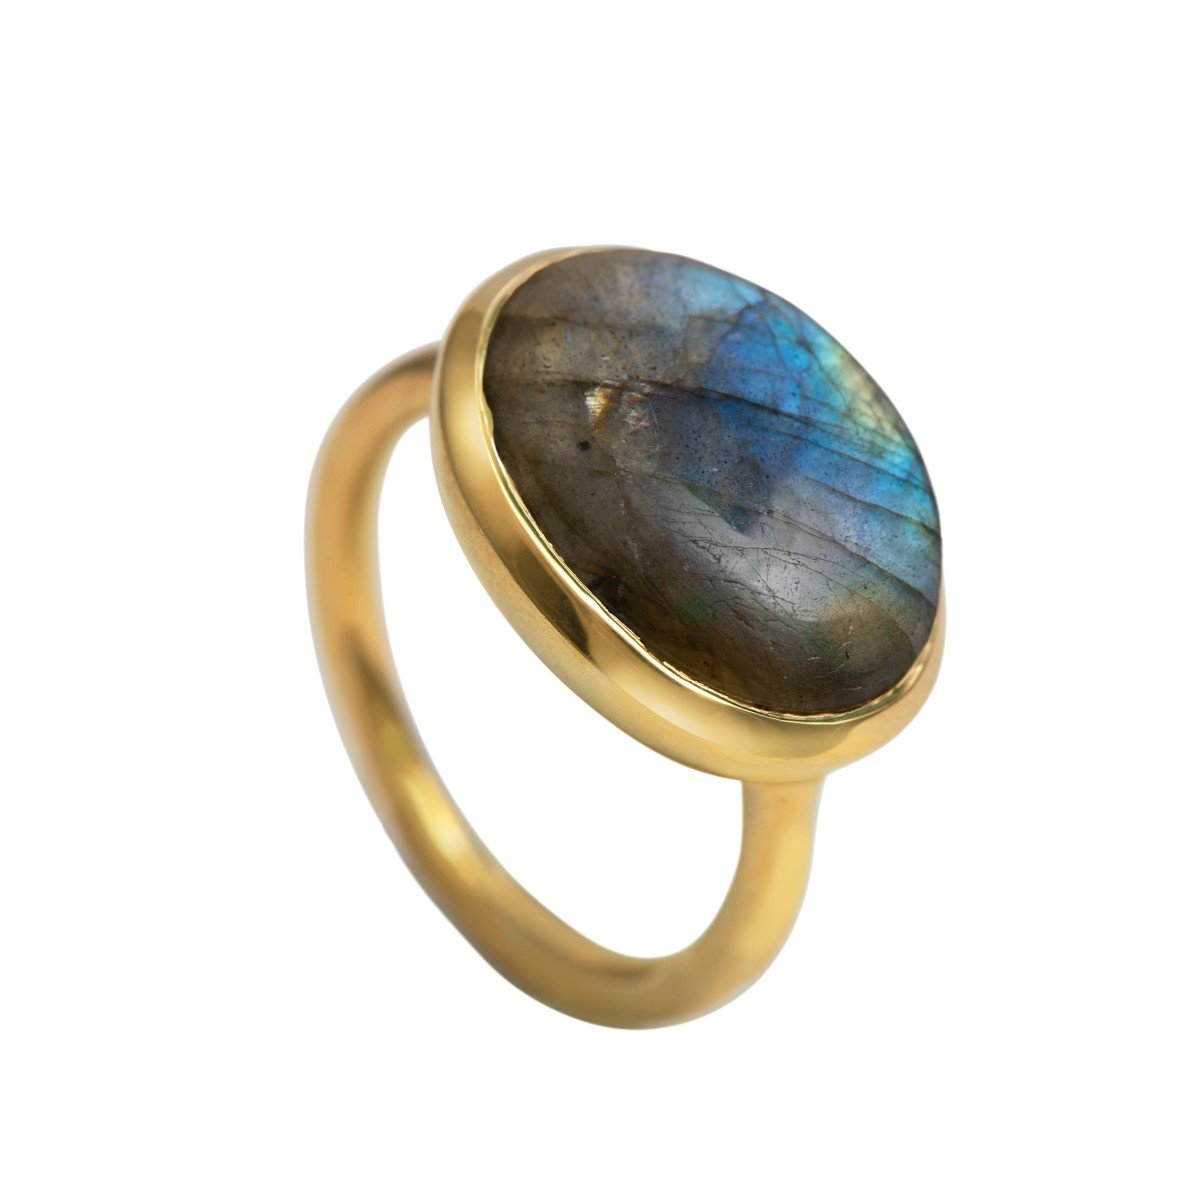 Cabochon Oval Cut Natural Gemstone Gold Plated Sterling Silver Ring - Labradorite